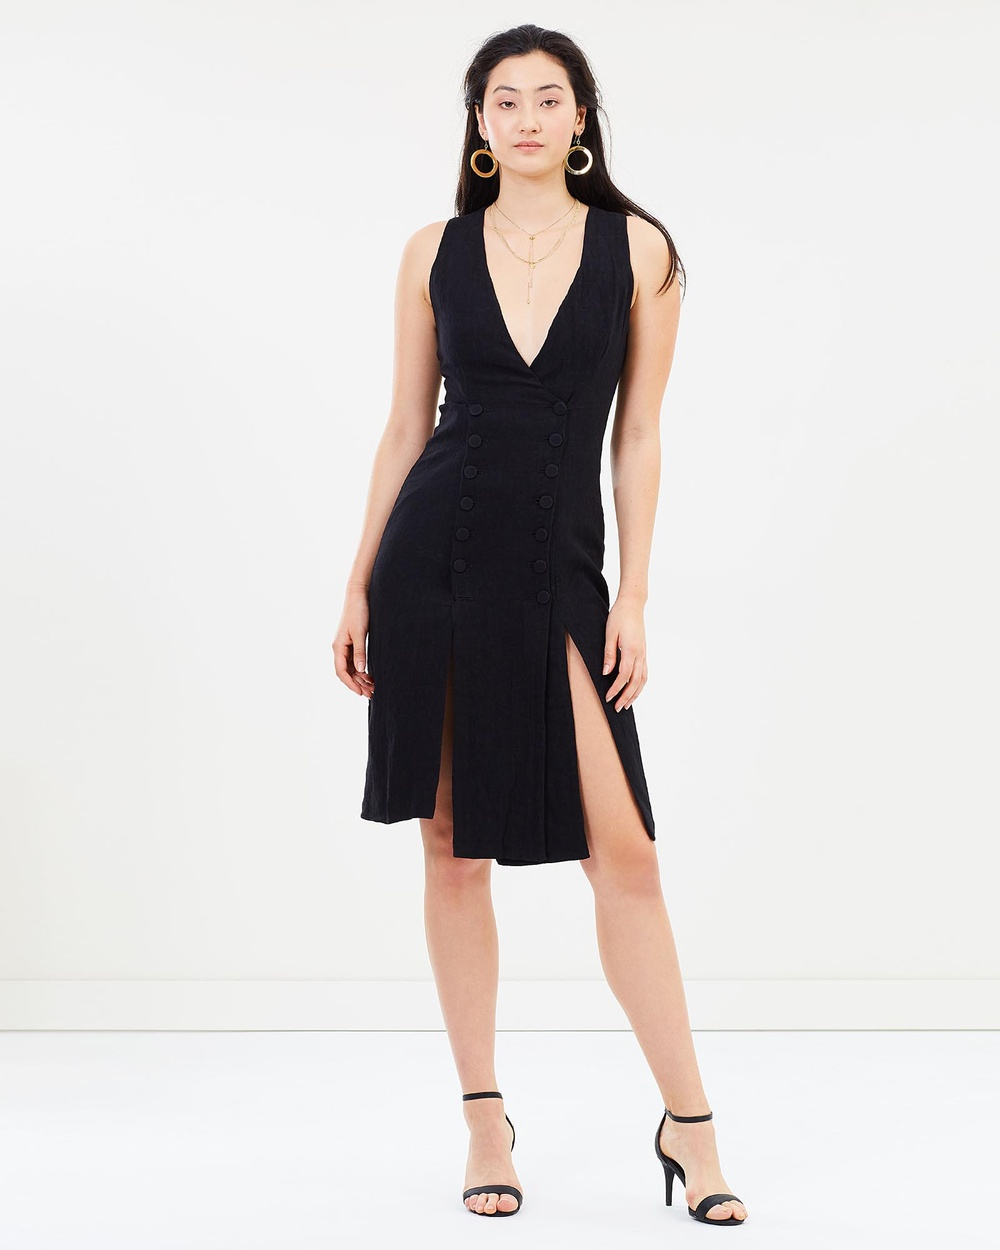 Third Form Closure Midi Dress Dresses Black Closure Midi Dress